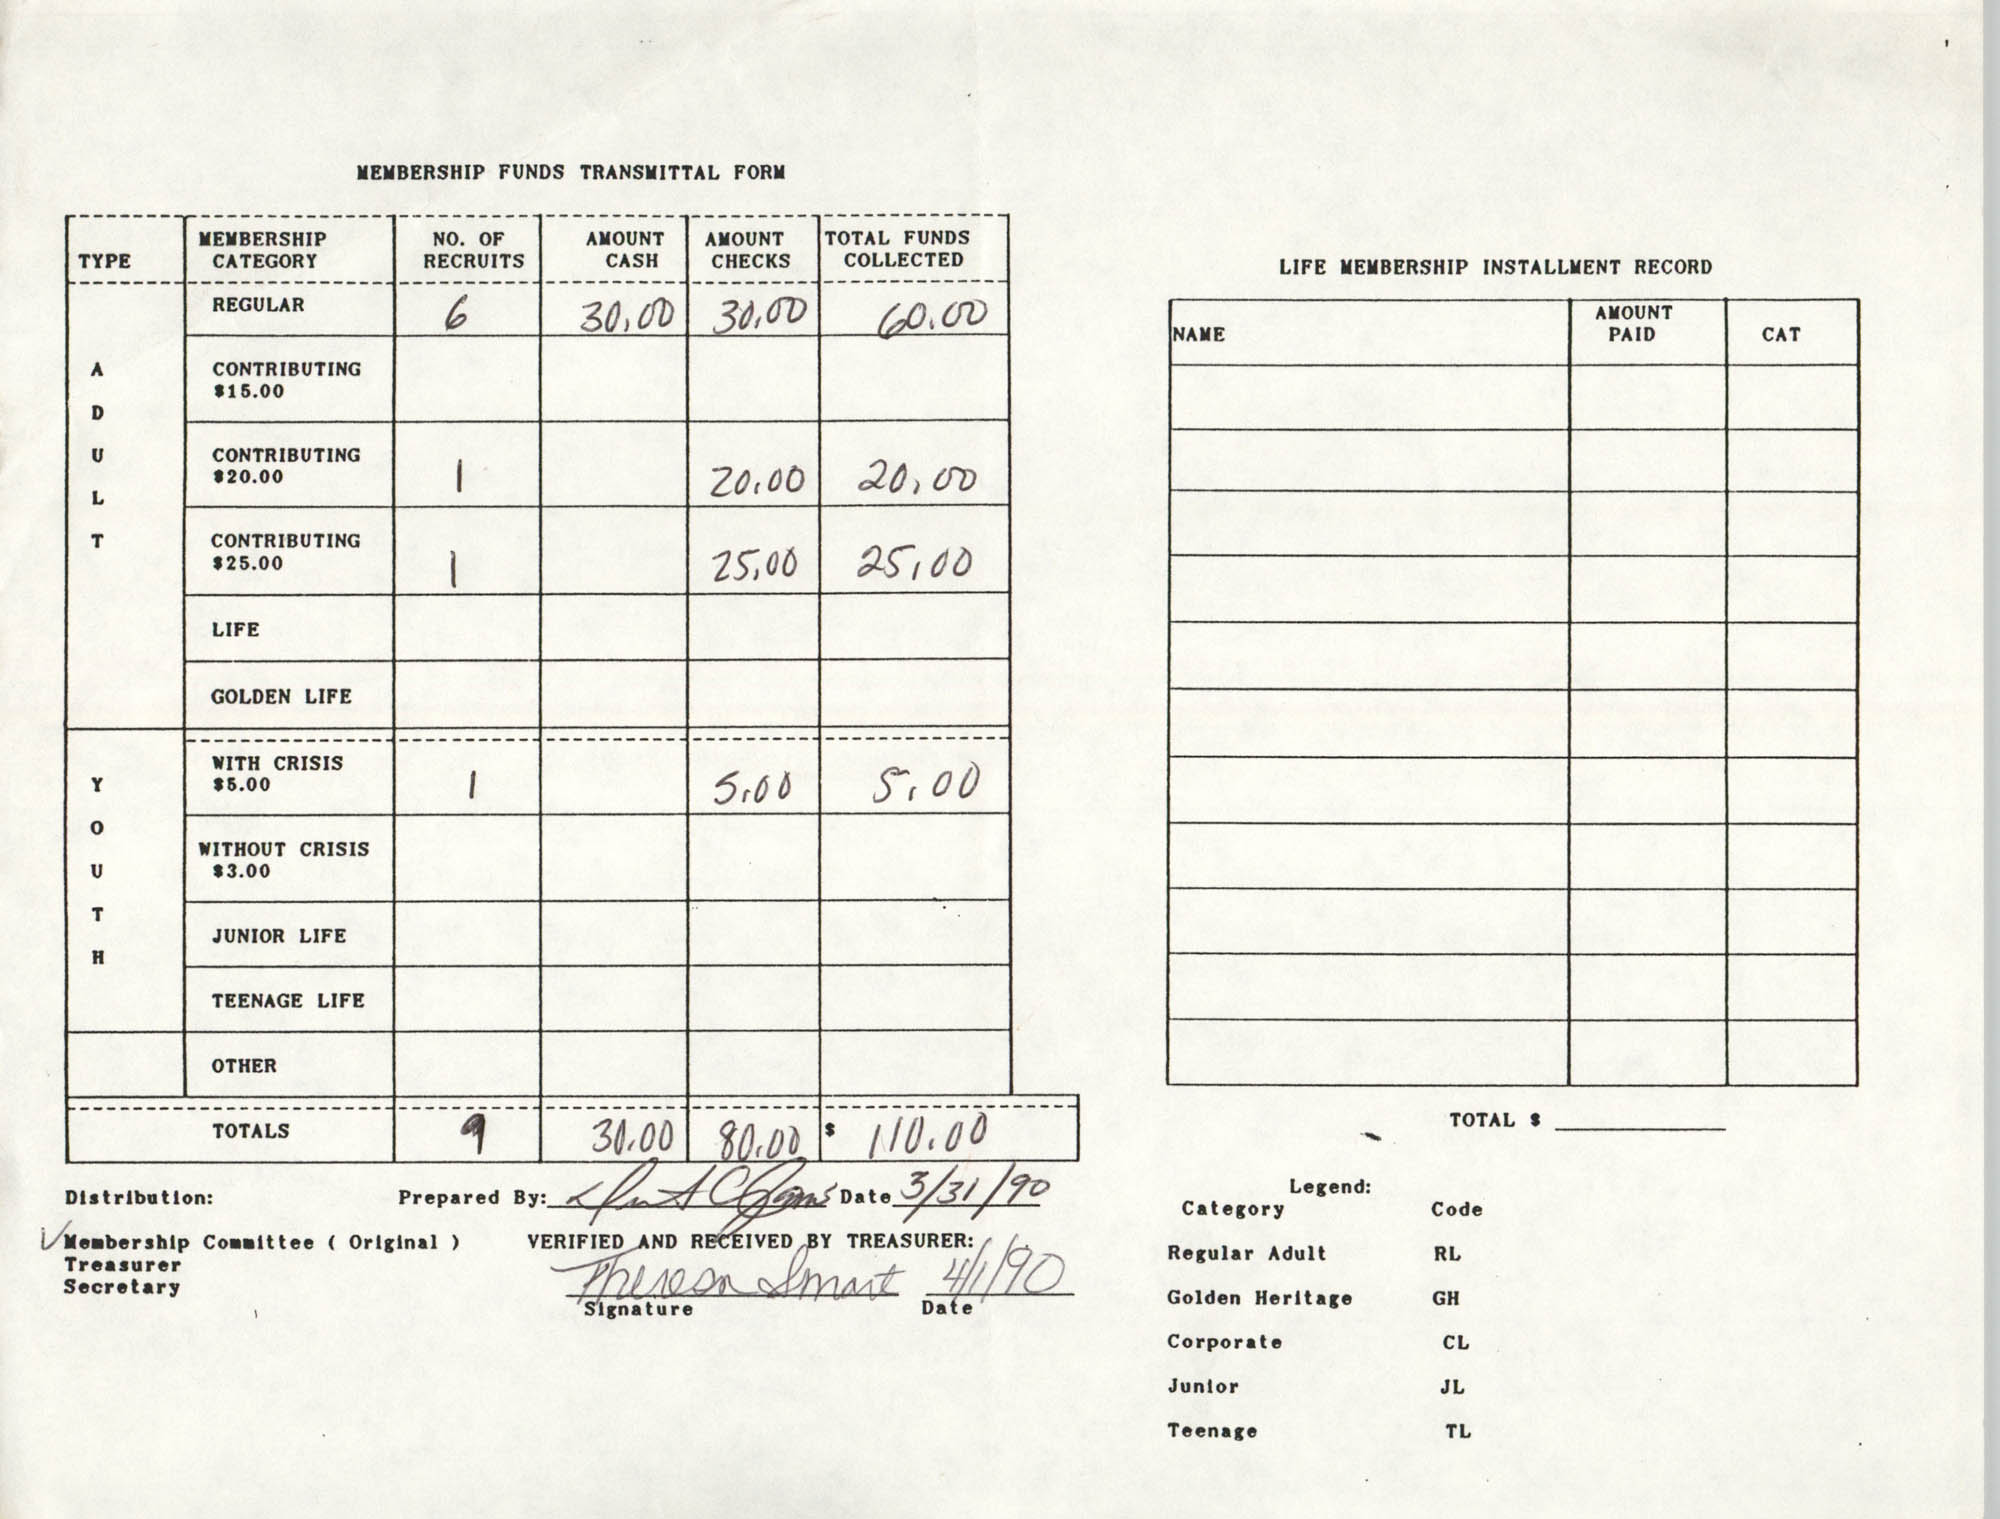 Charleston Branch of the NAACP Funds Transmittal Forms, March 1990, Page 3